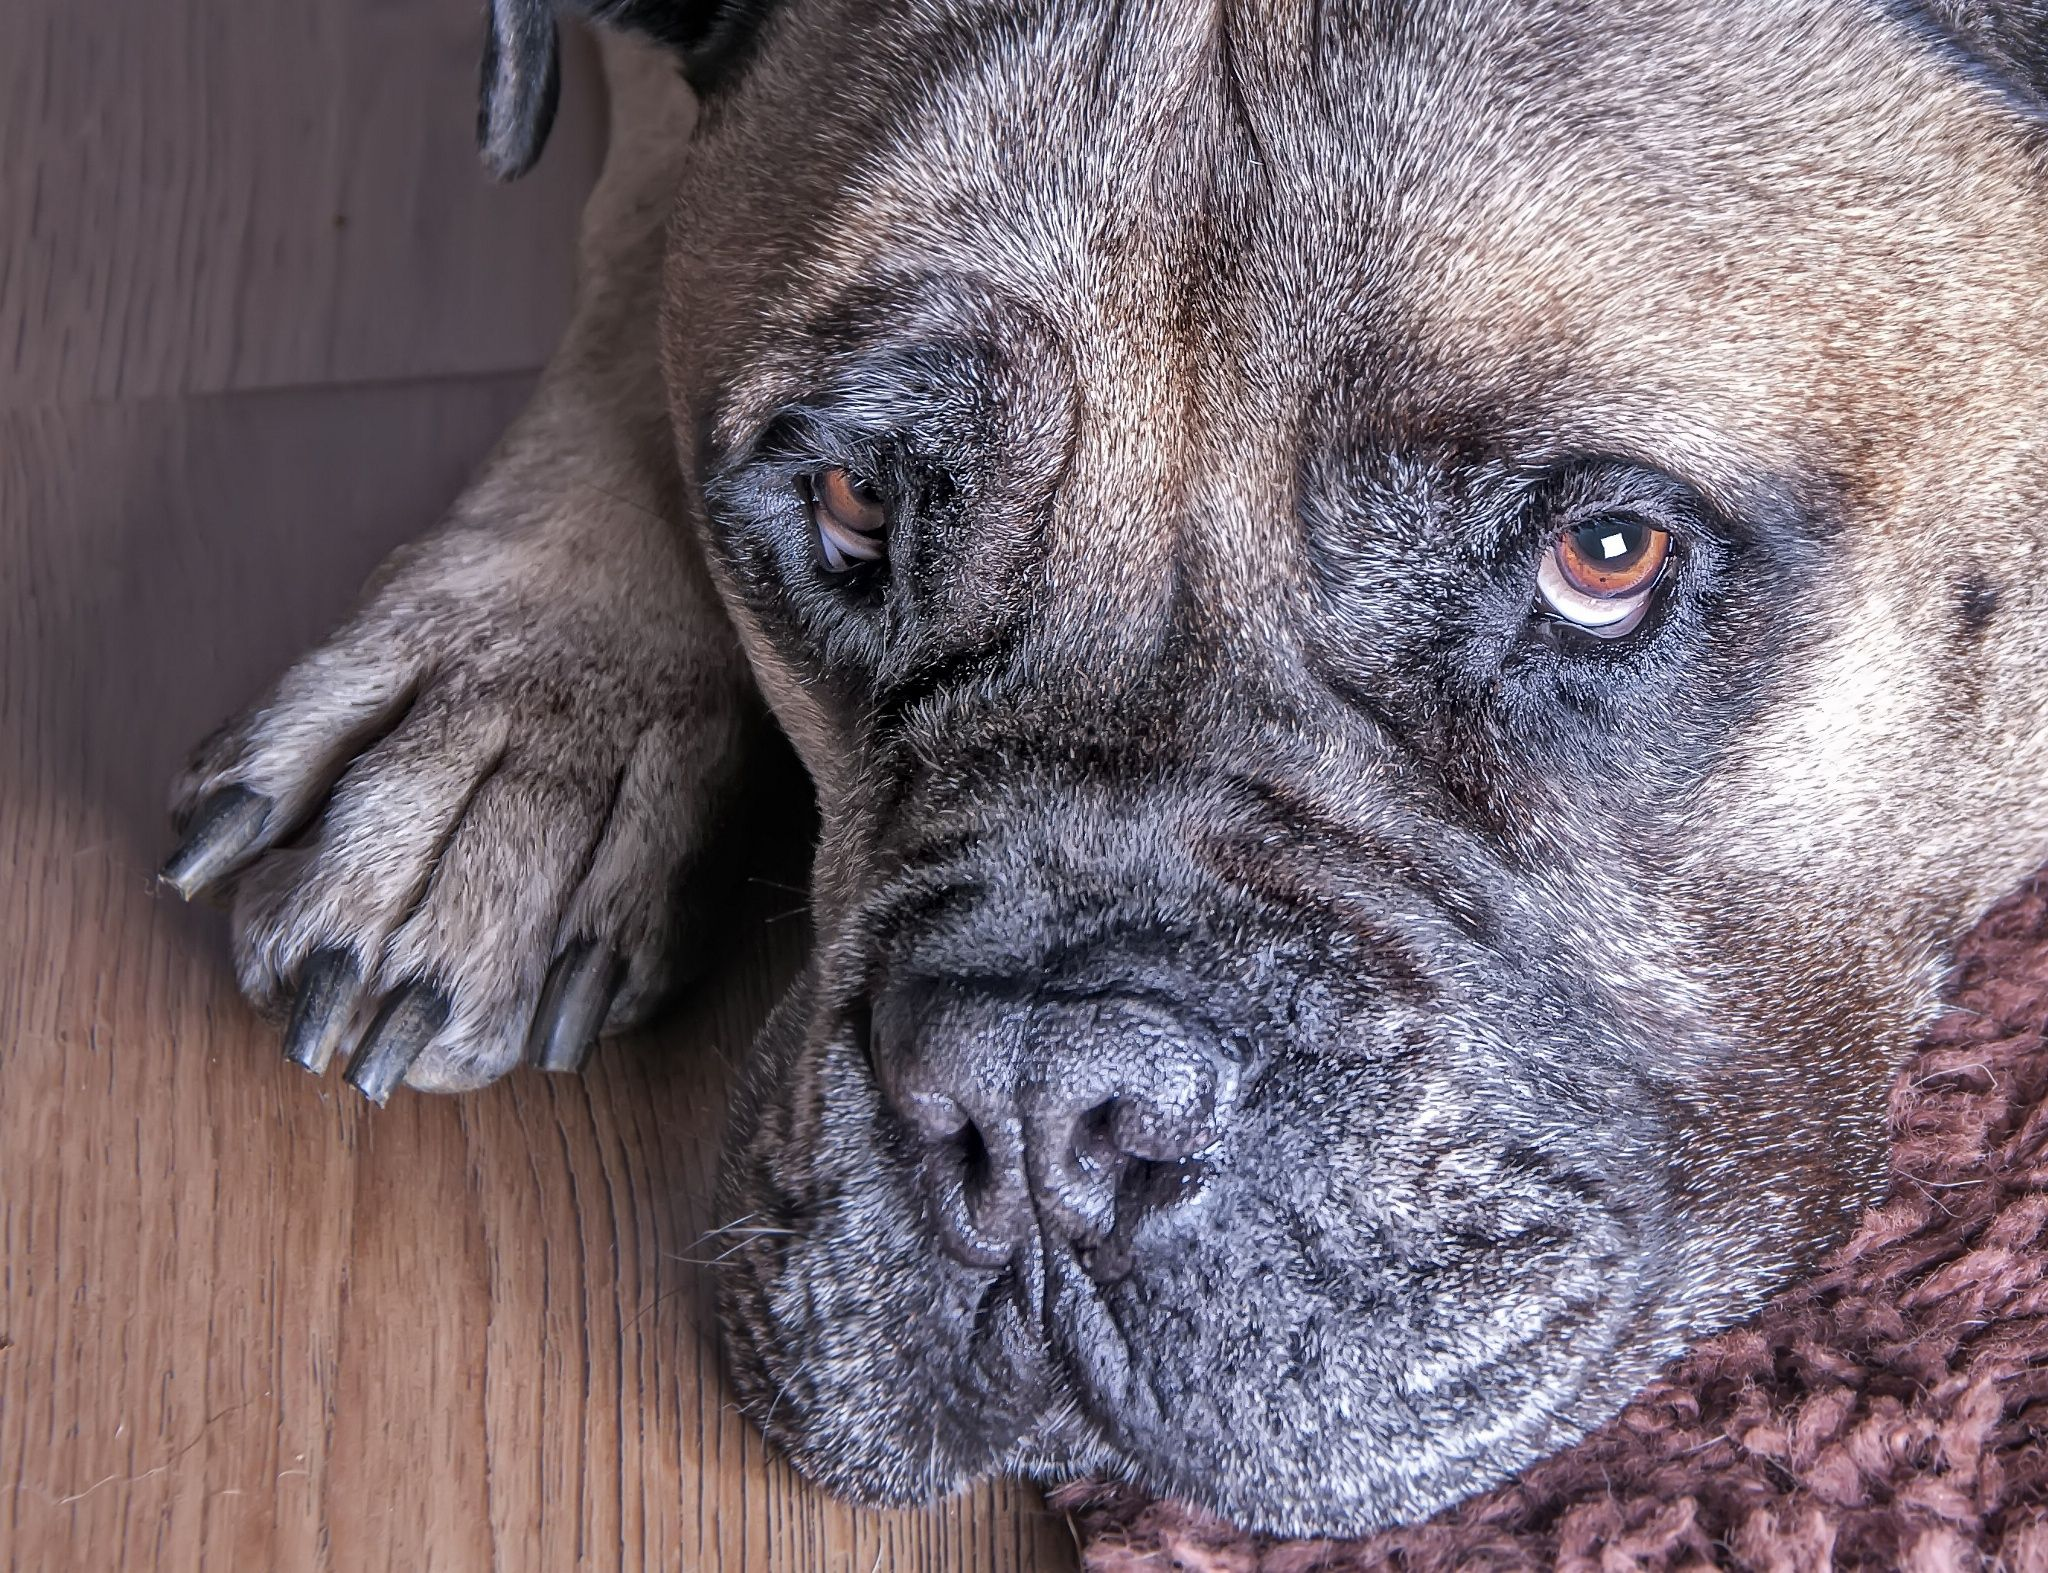 Modern Dead Bullmastiff Dog Looking Up As If To Ask Do You Bullmastiff Dog Looking Up As If To Ask Do You Want Dogs Can T Look Up Quote Can Dogs Look Up Shaun bark post Can Dogs Look Up